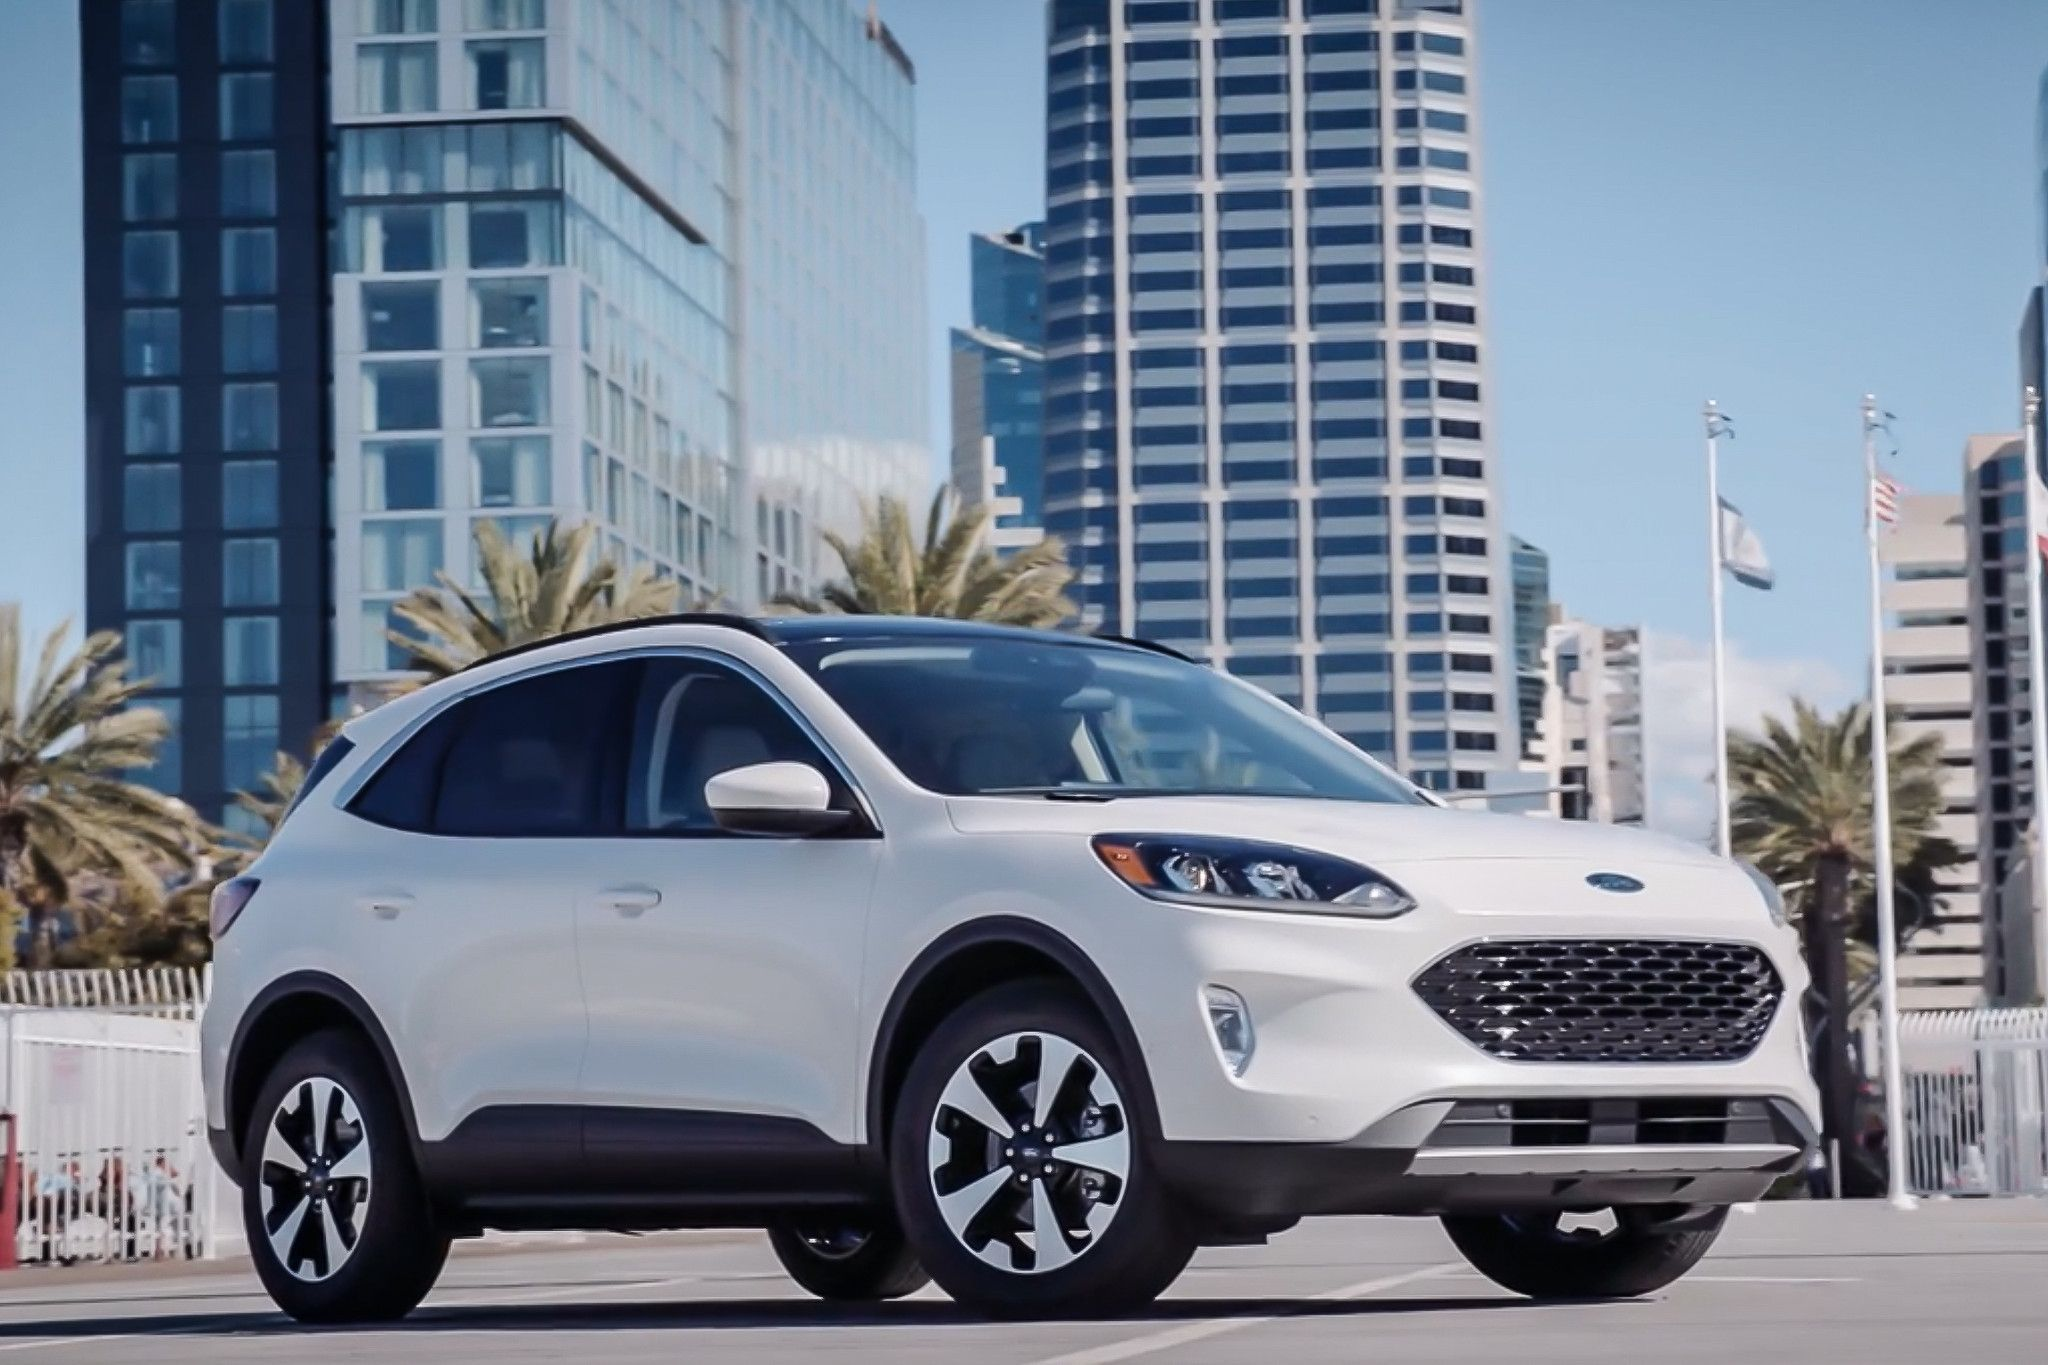 2020 Ford Escape Specs And Review In 2020 Ford Escape Sedan Suv